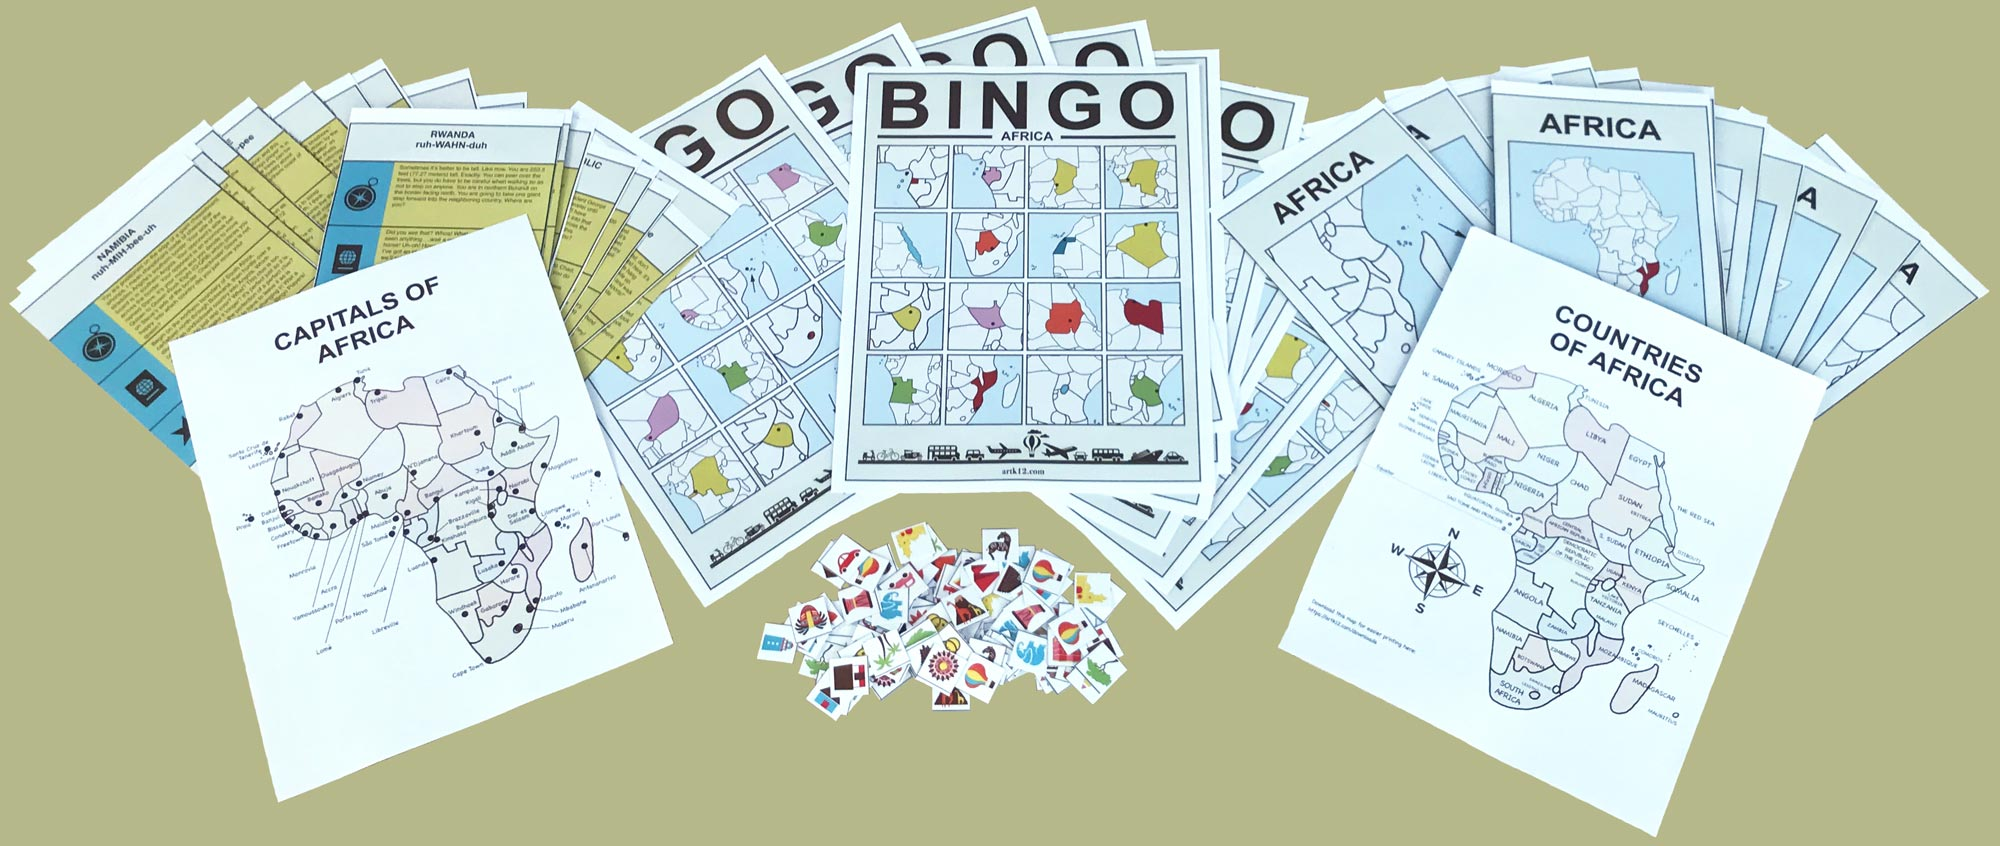 Showing all included in the Africa Bingo game: 50+ flash cards, 100+ tokens, 20 bingo cards, 2 Africa maps (countries and capitals).